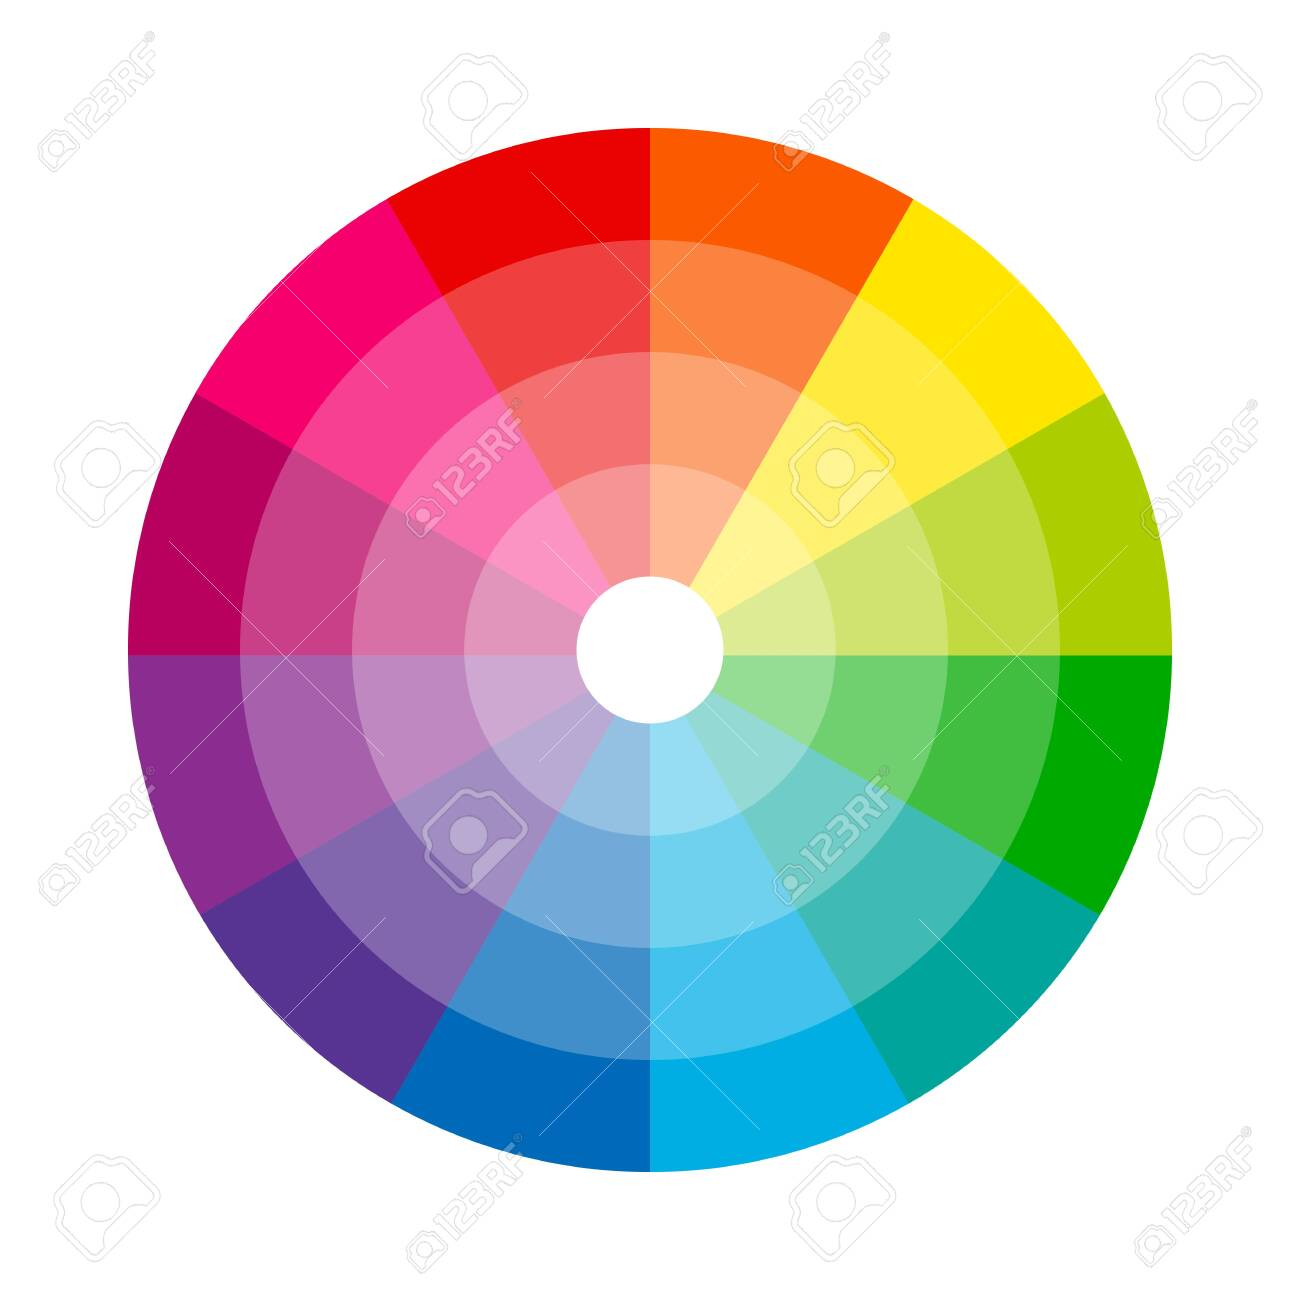 Color wheel isolated circle on white background vector illustration - 148762547